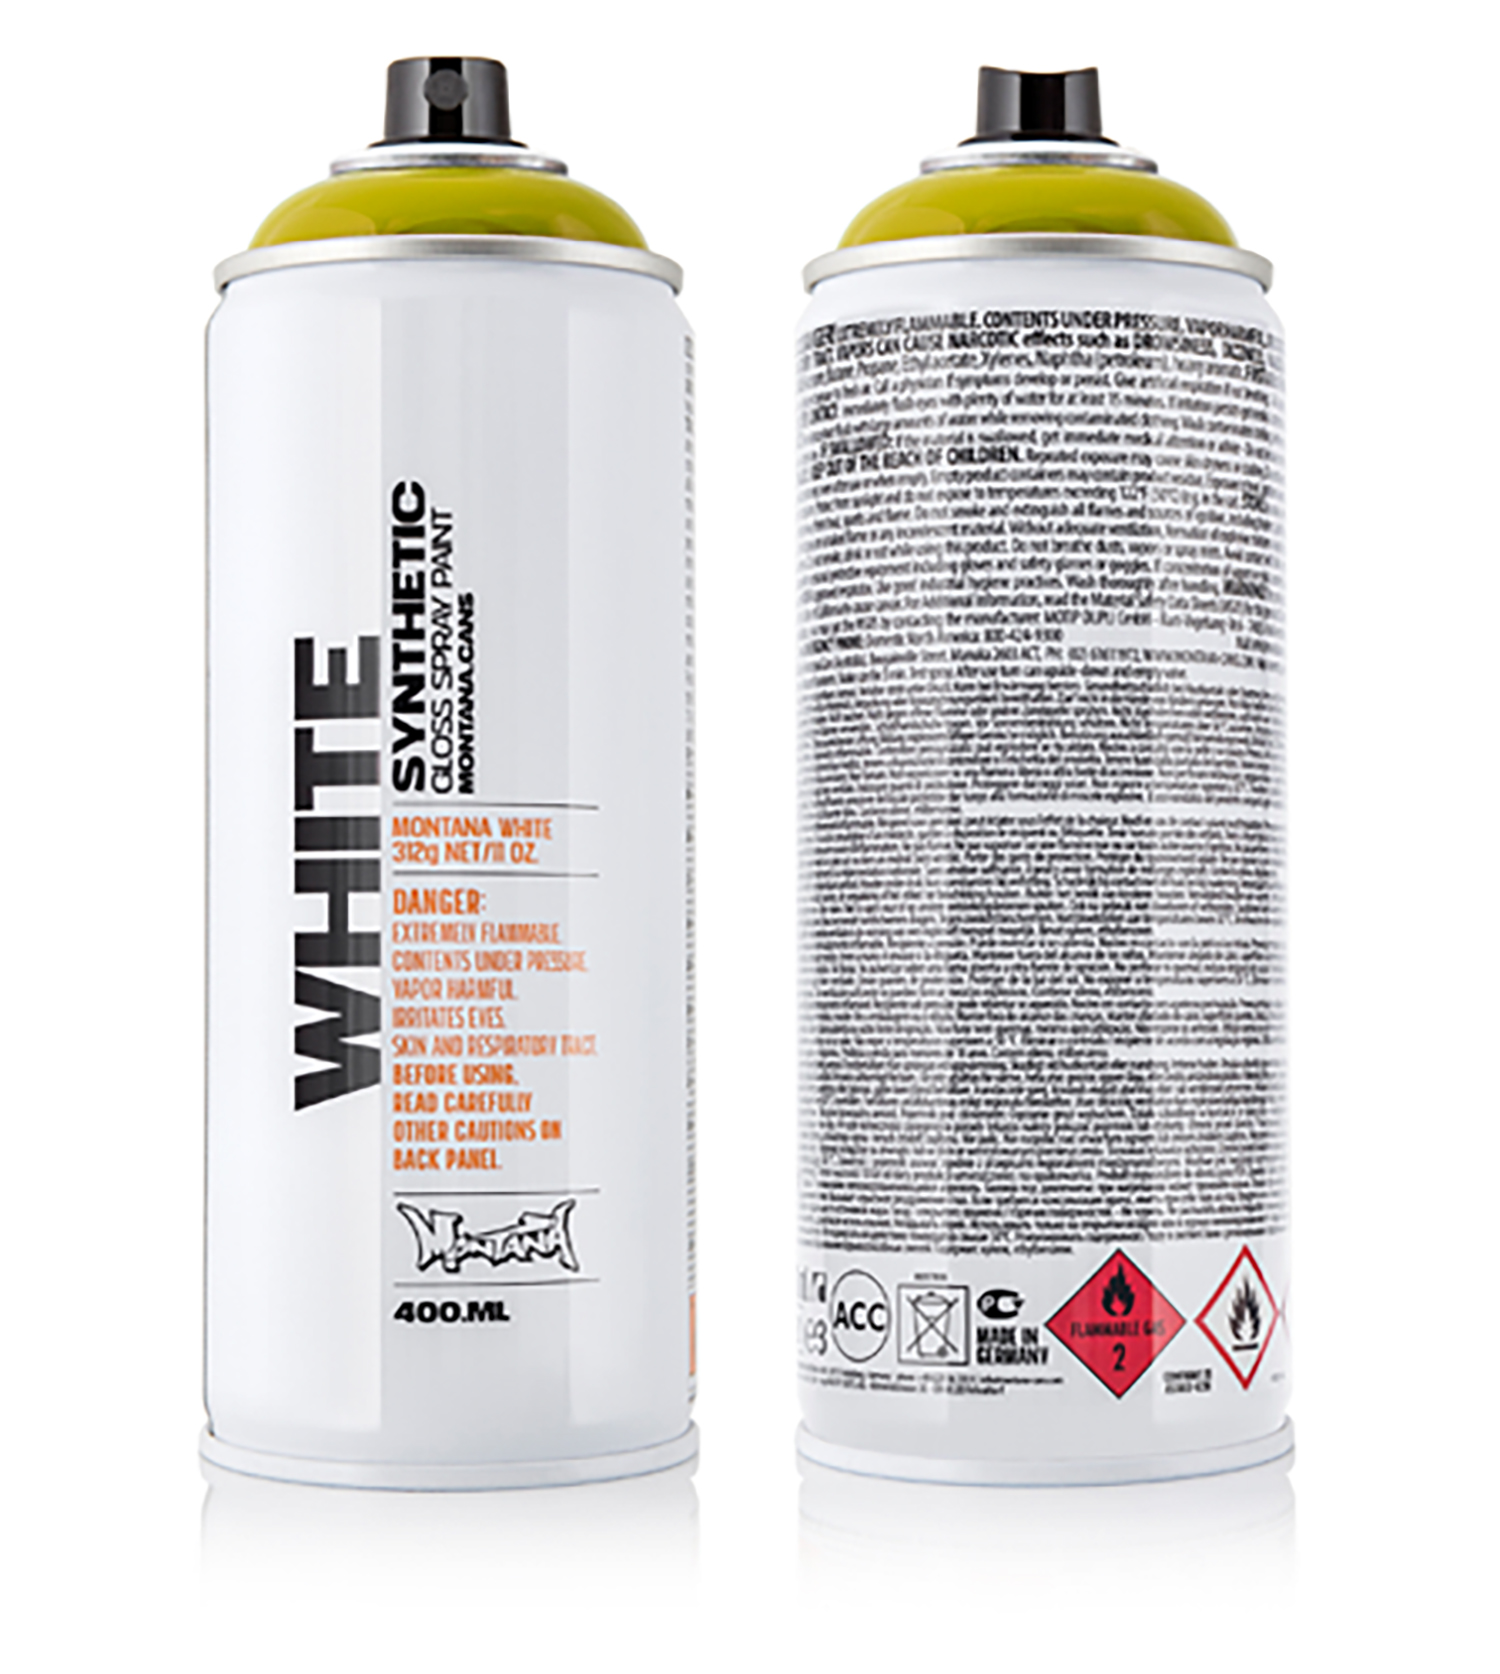 MONTANA-WHITE-SPRAY-400ML-1130